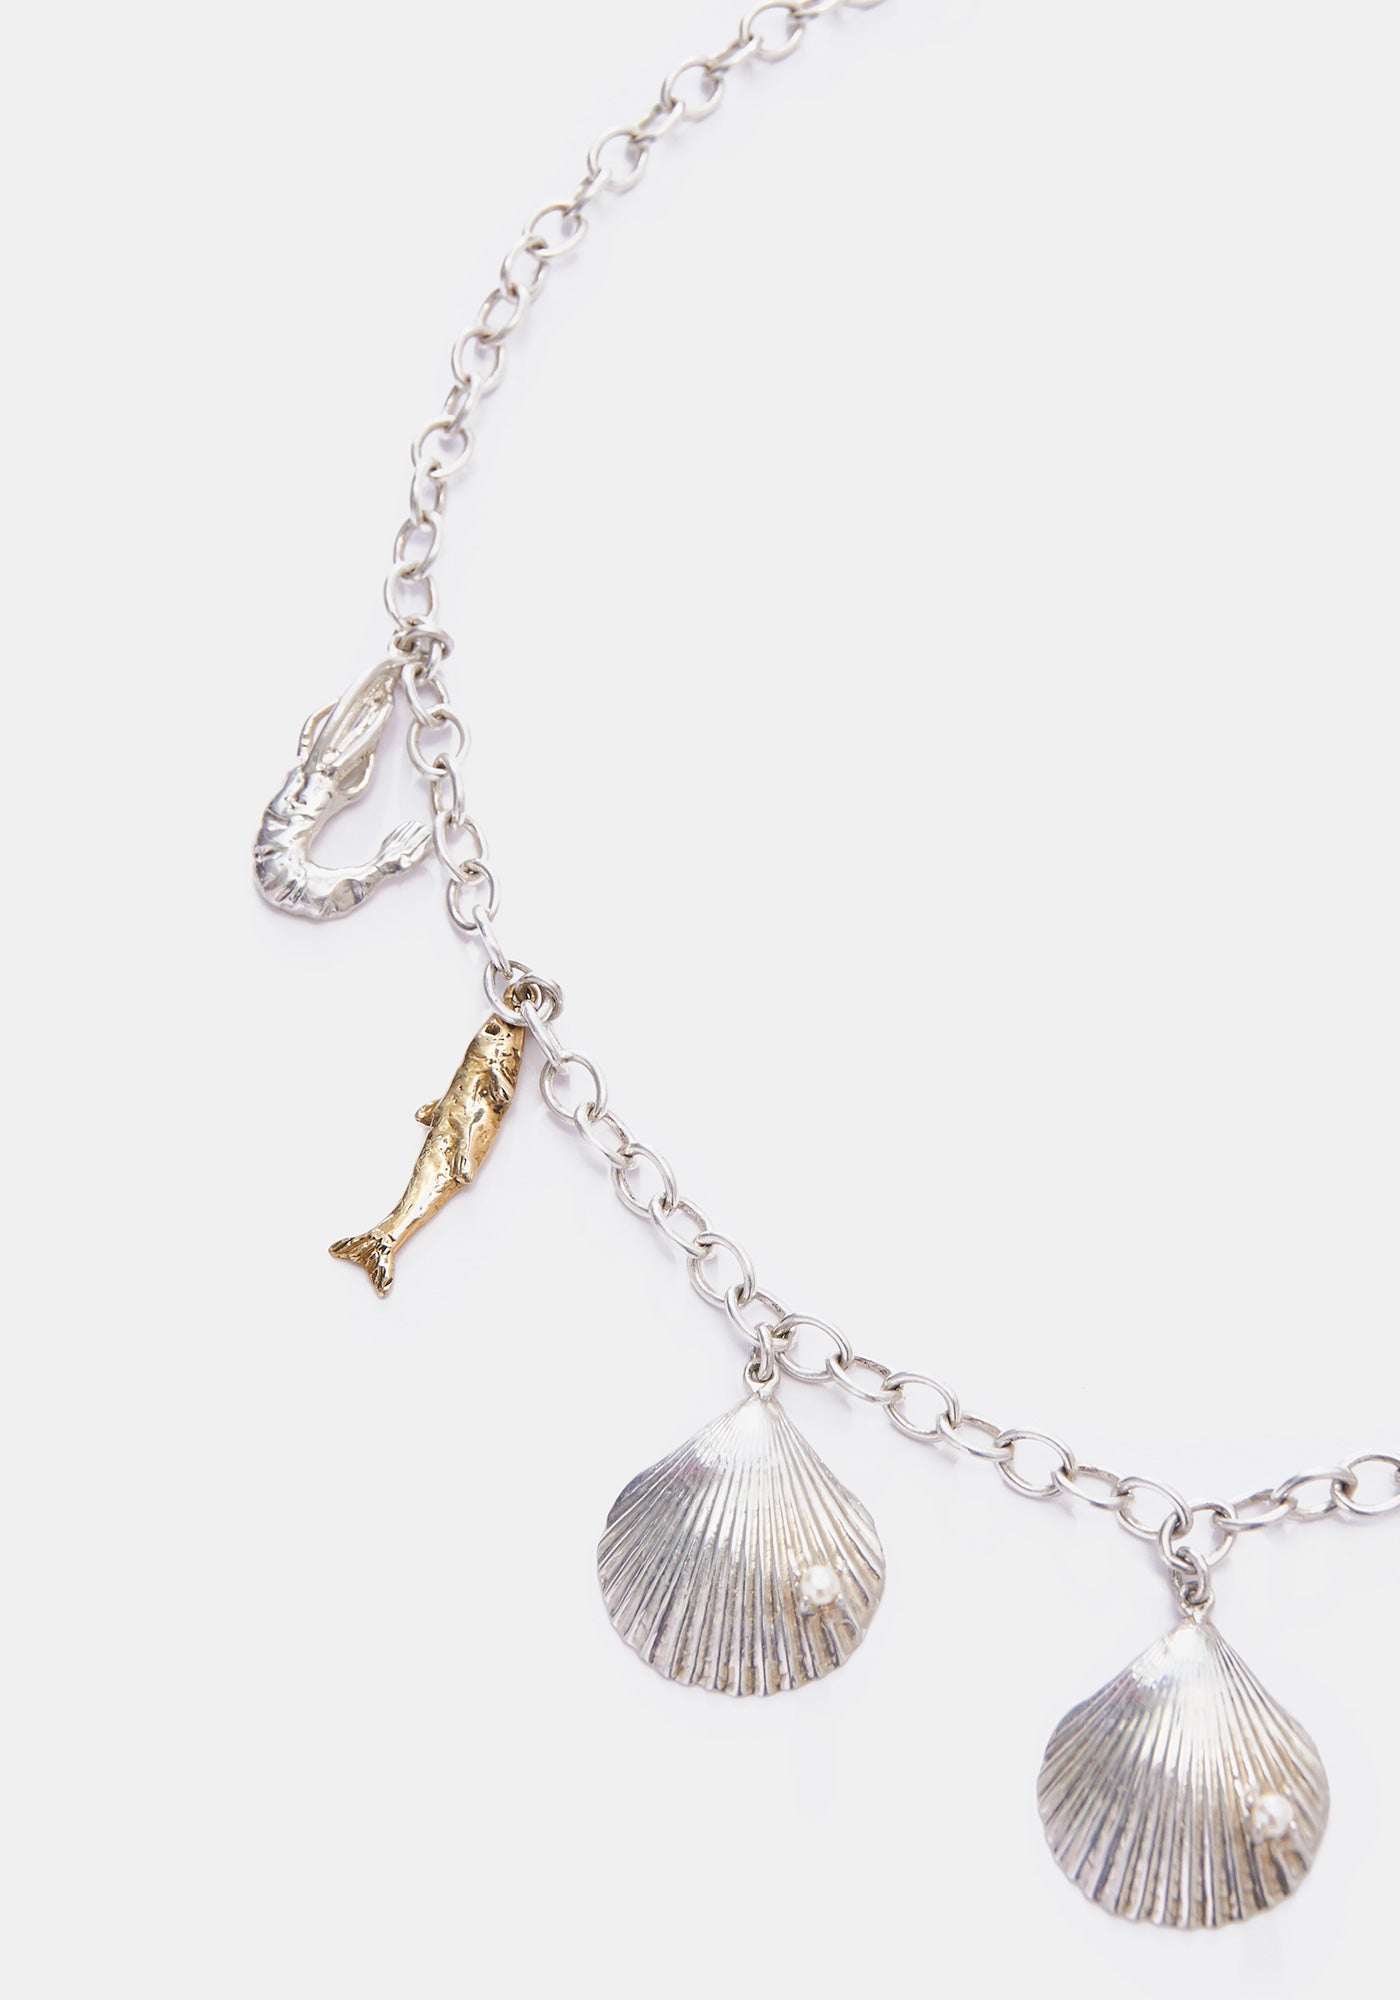 La Plage Charm Necklace